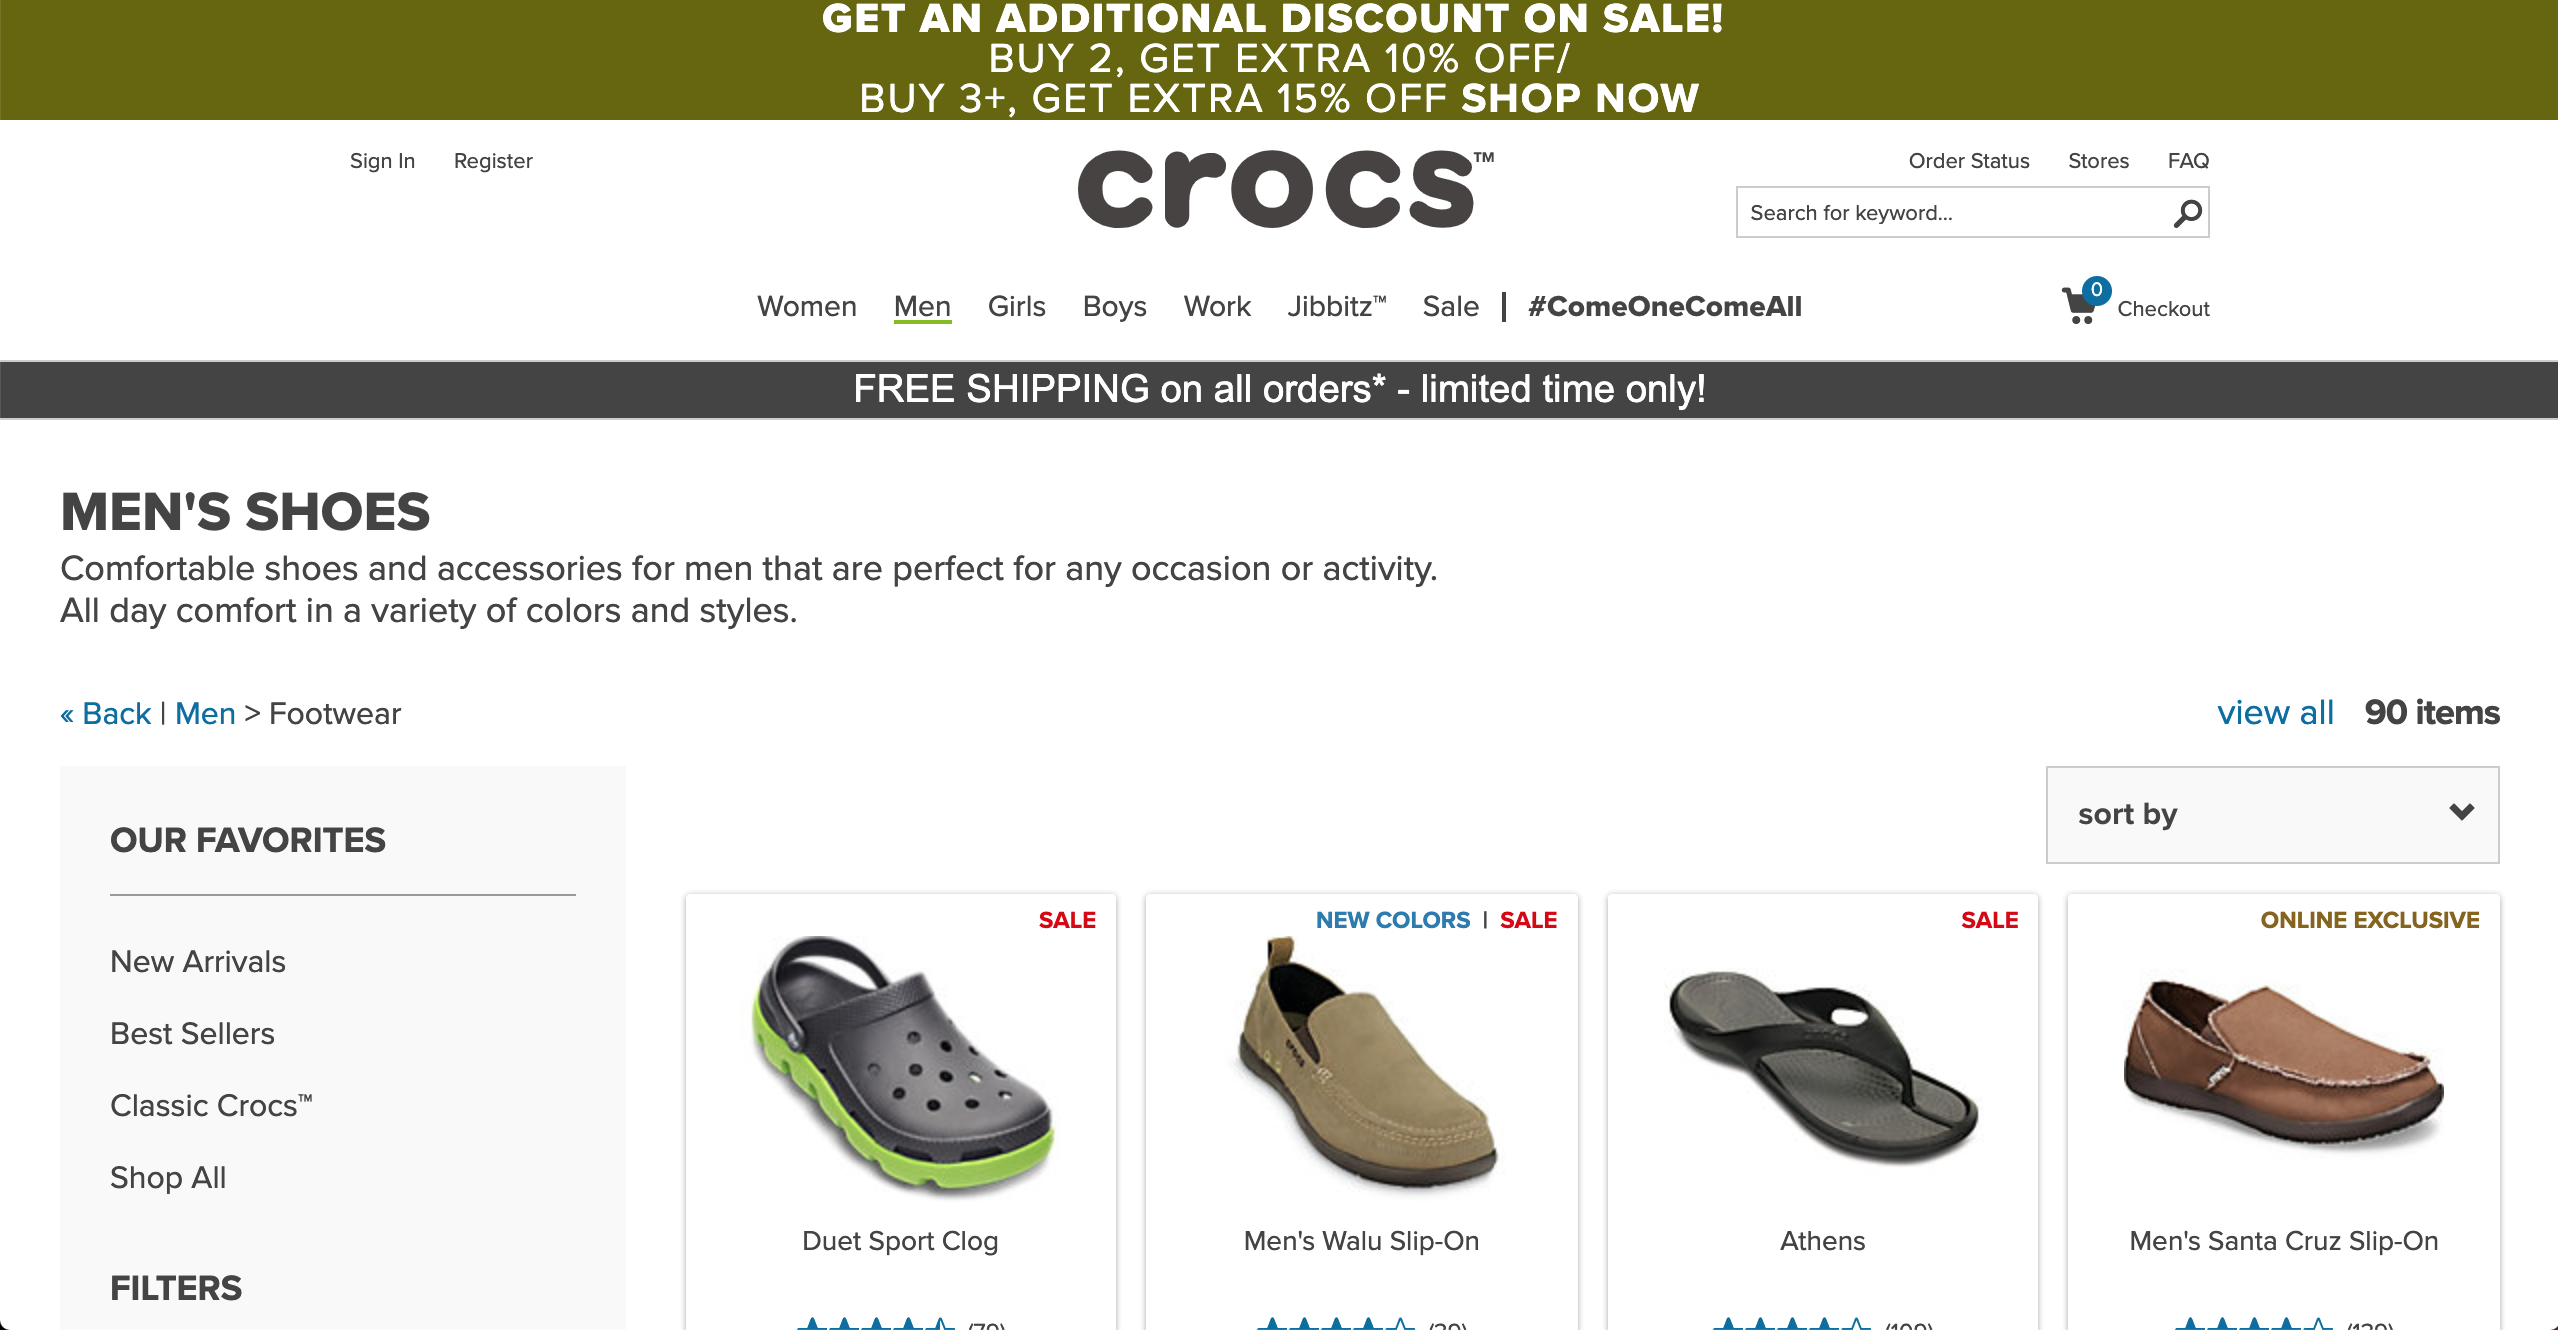 Crocs men s products page